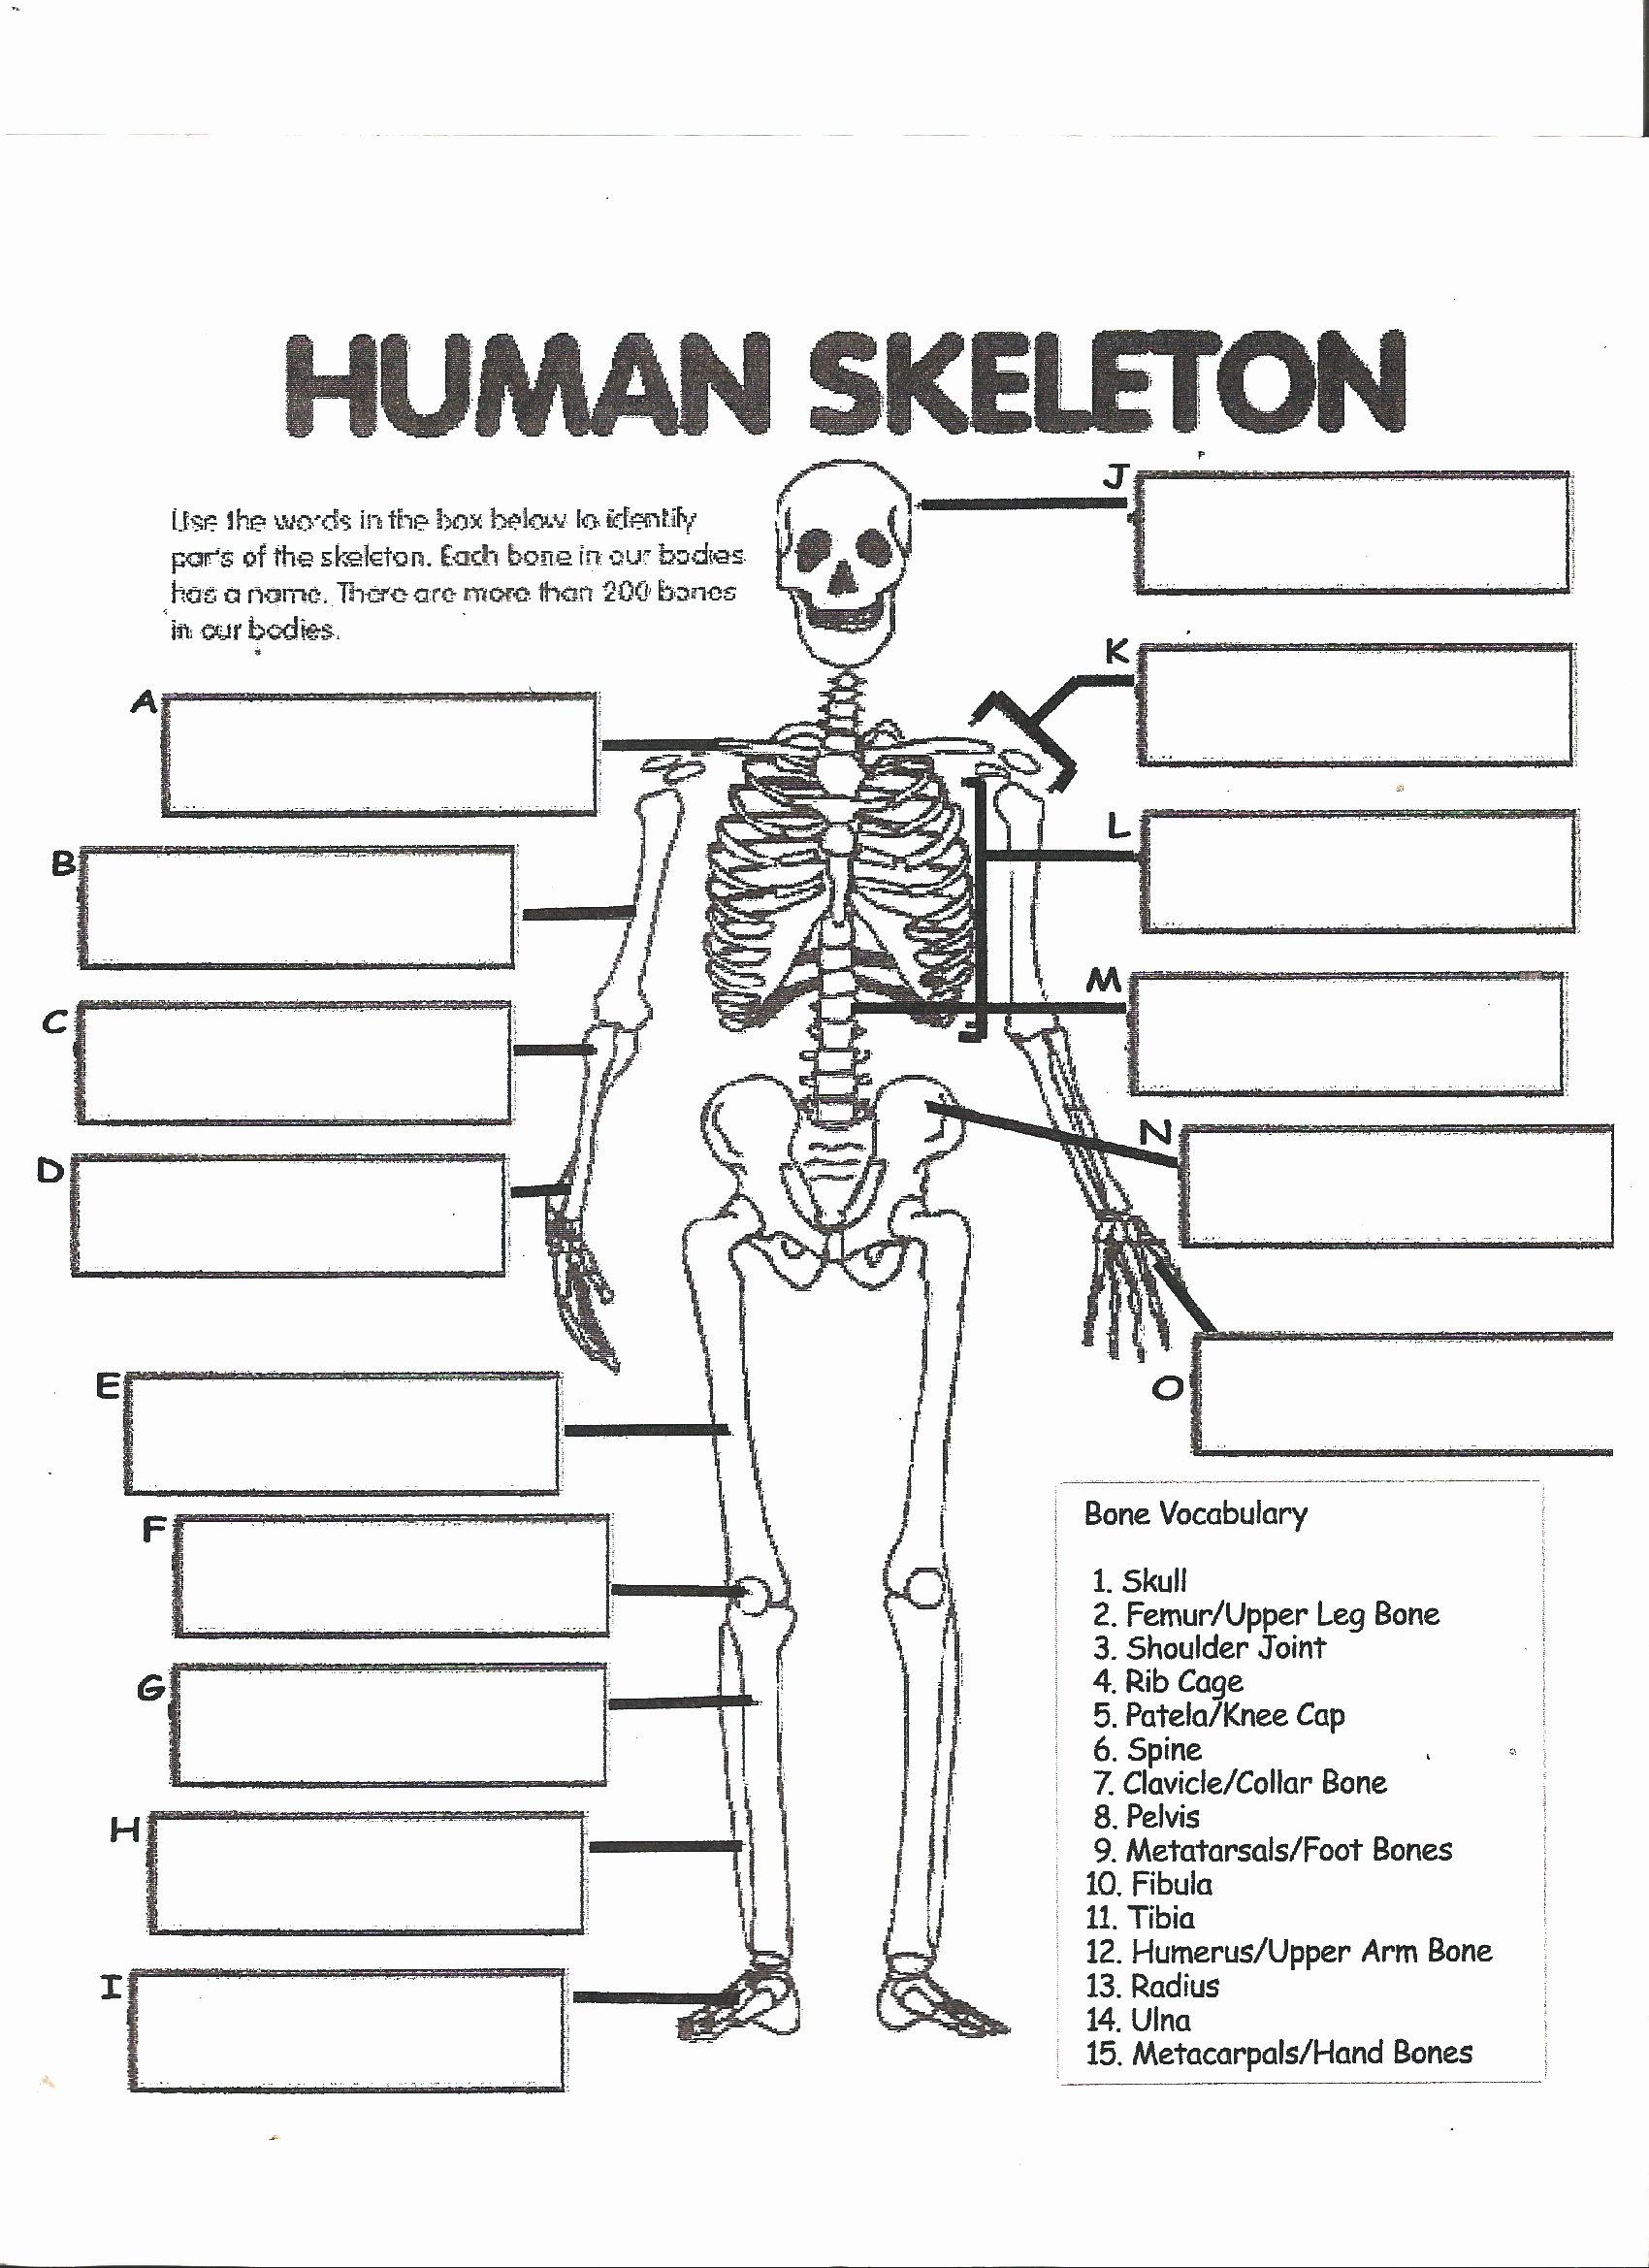 Skeletal System Labeling Worksheet Fresh Human